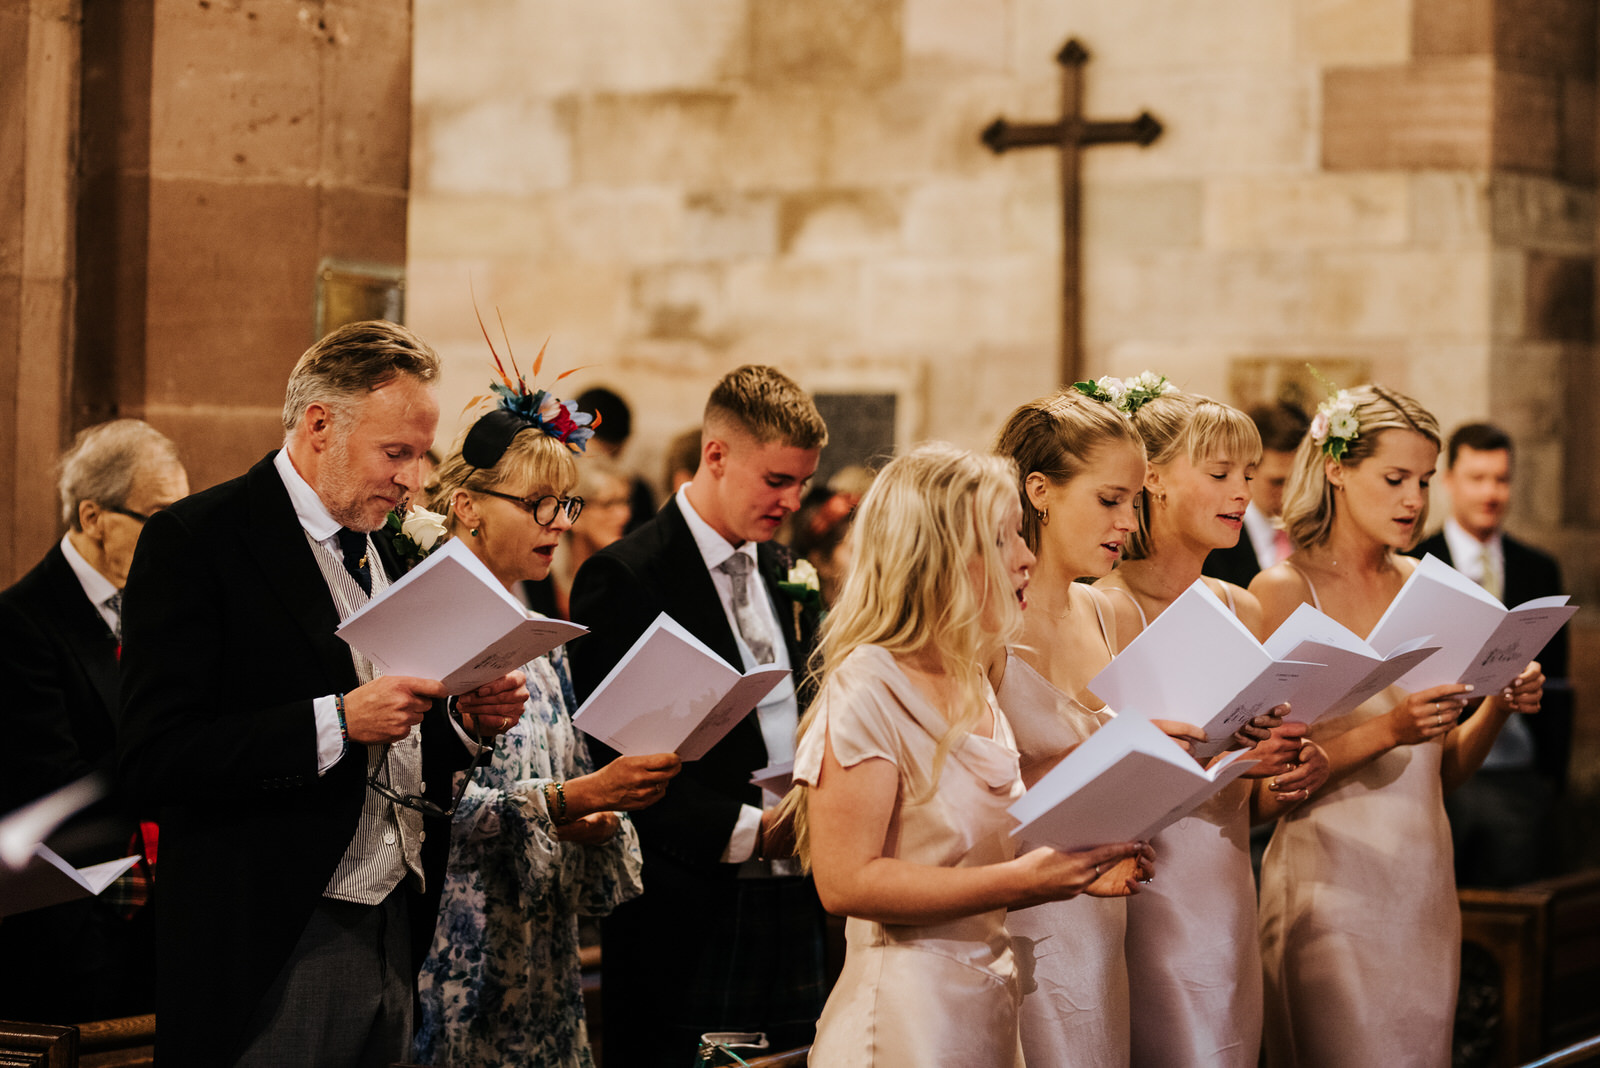 Bridesmaids and bride's side of the family all lined up in the pews singing a hymn